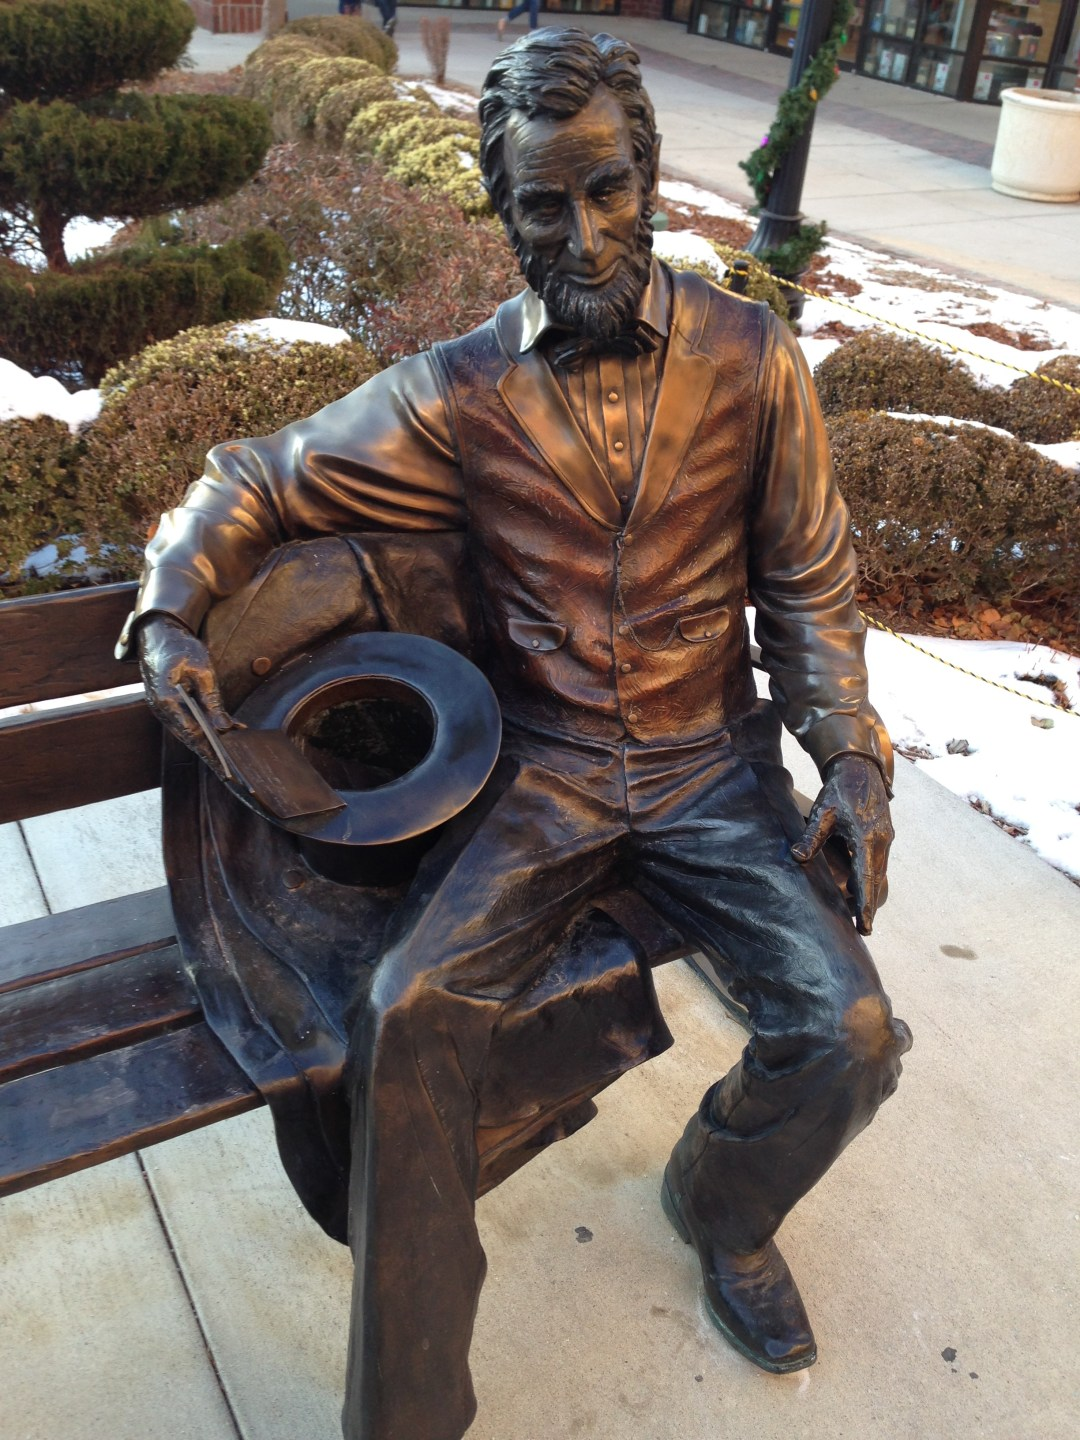 Even Abe looks chilly.